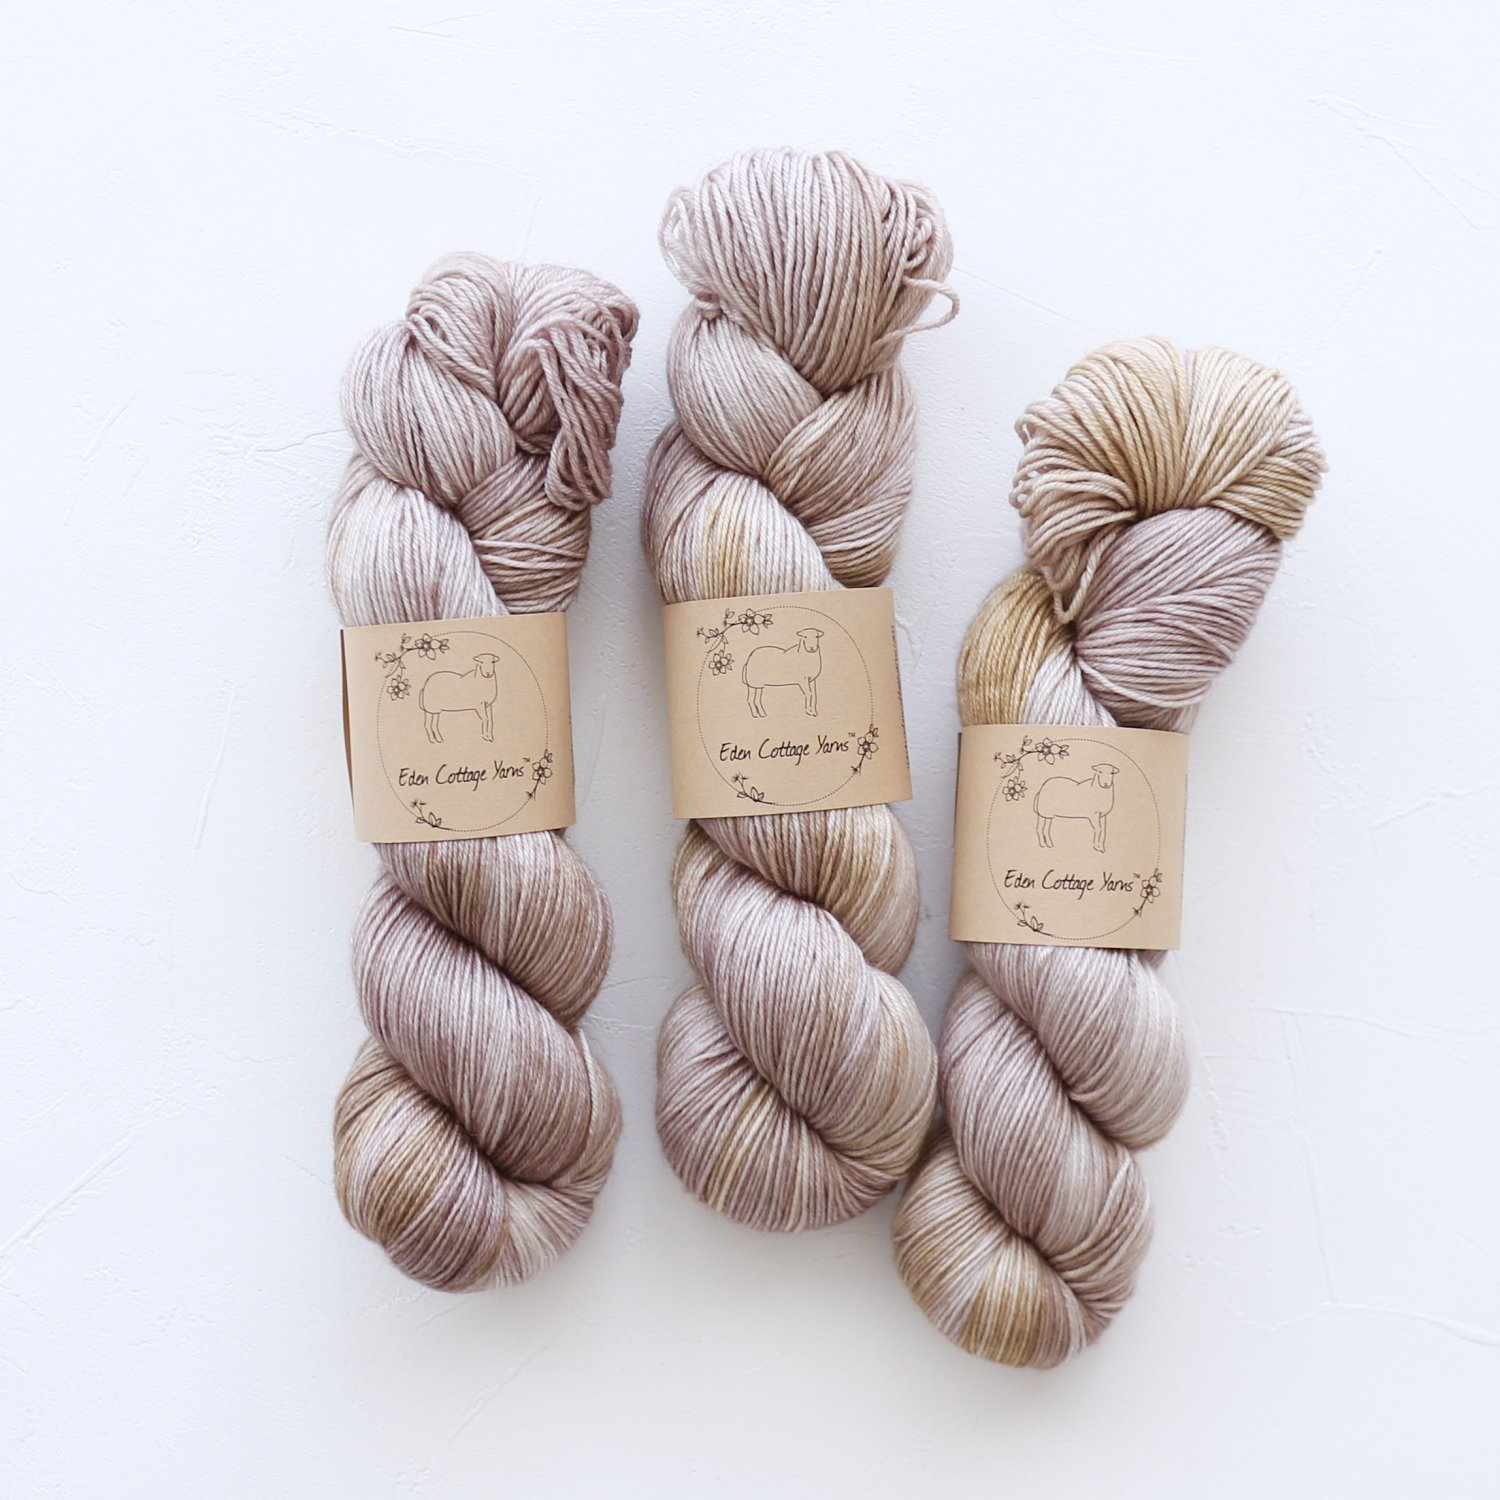 【Eden Cottage Yarns】<br>Pendle 4ply<br>Zeppelin